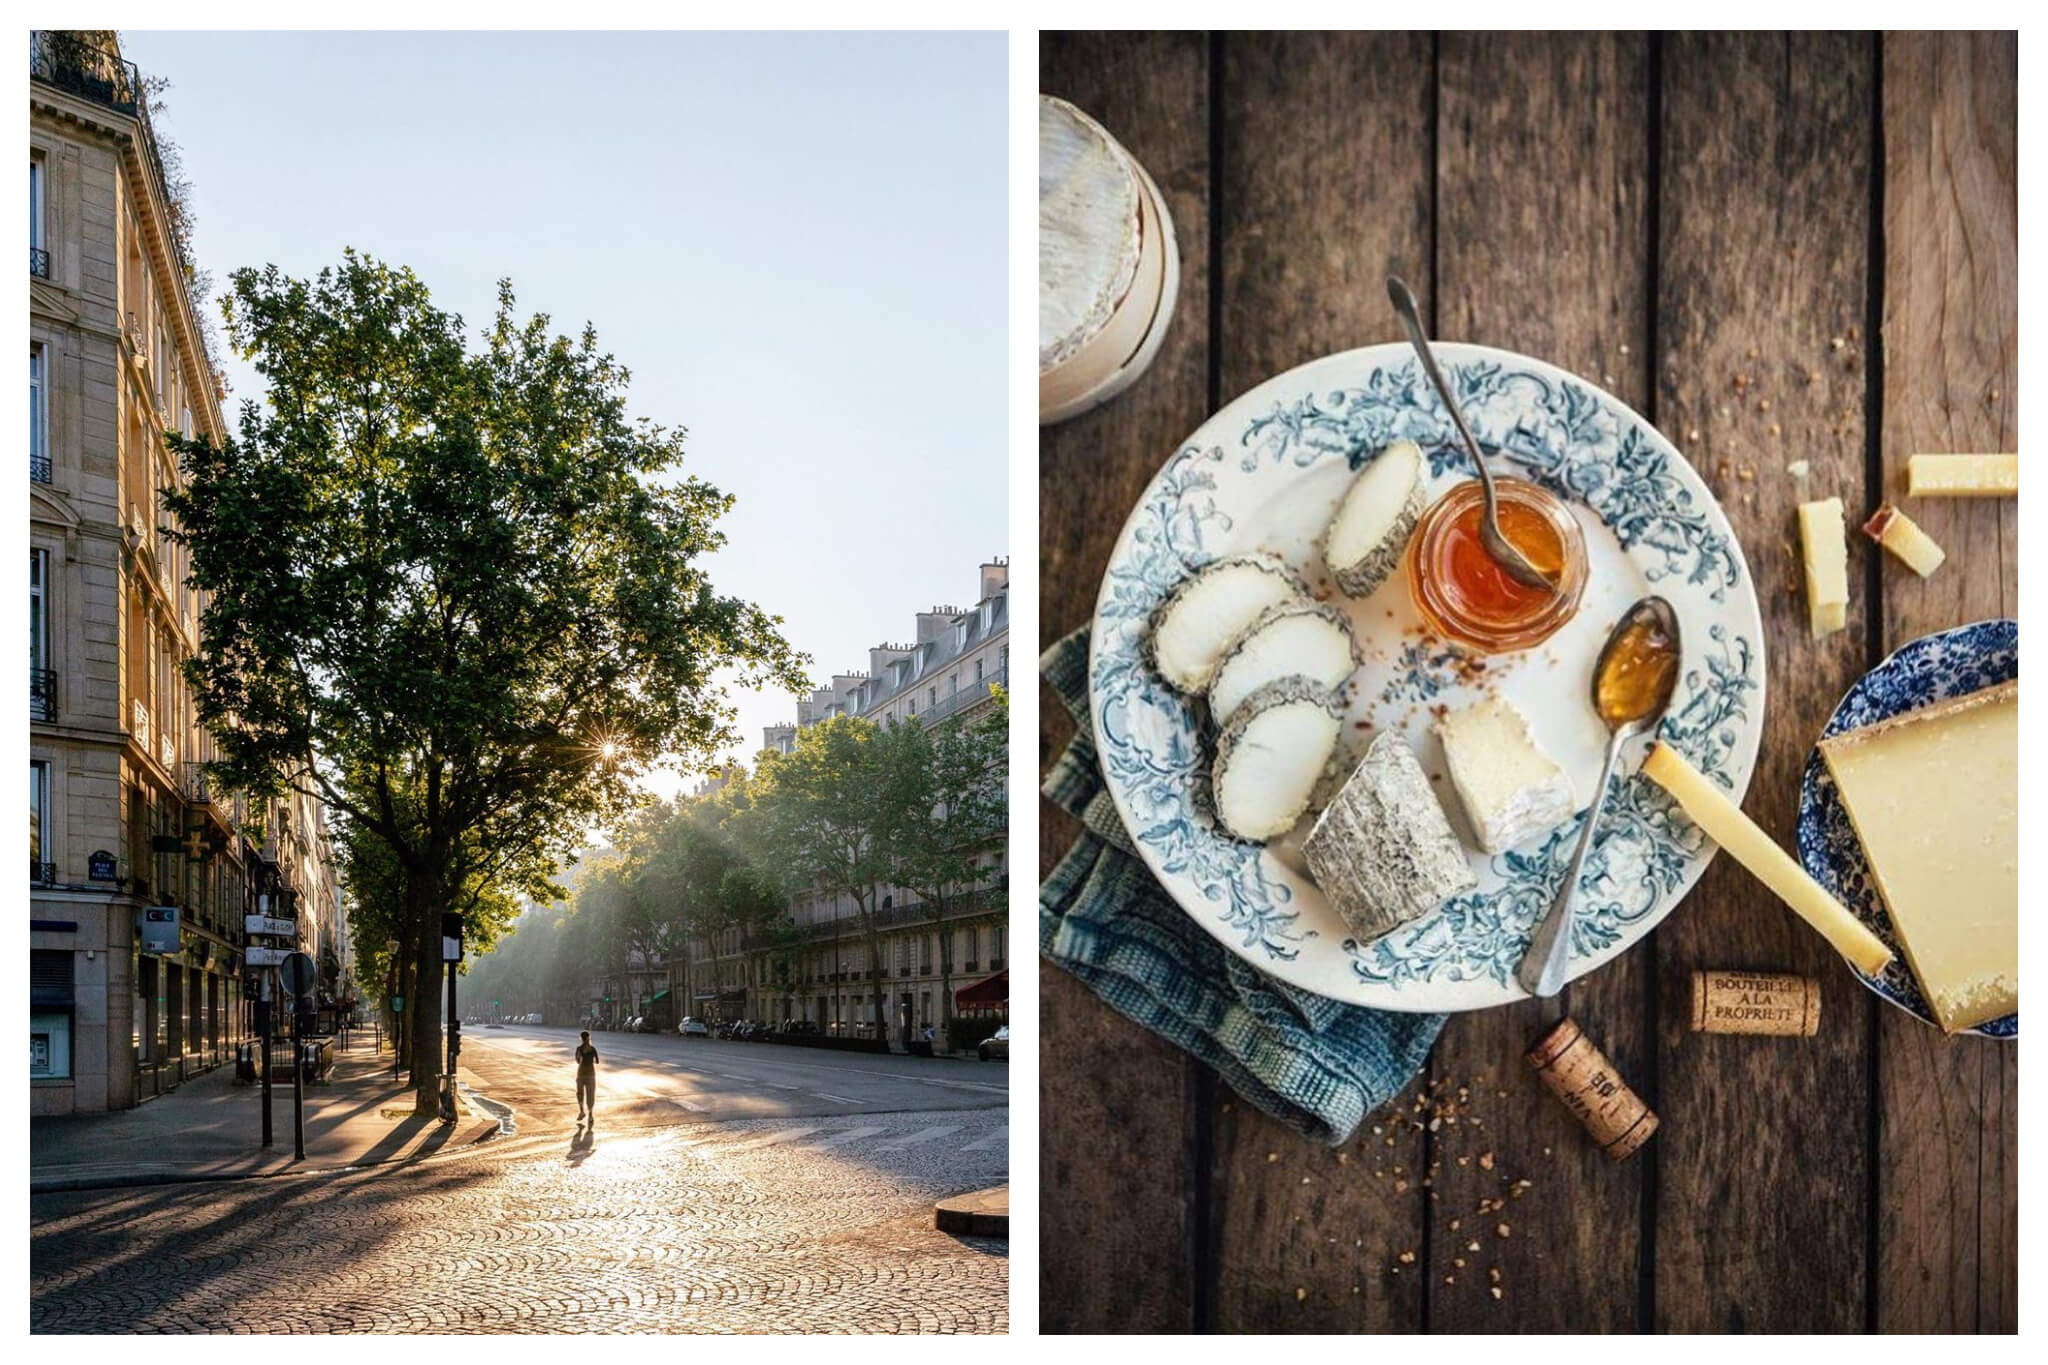 Left: A jogger runs down an empty street in Paris in the early evening, Right: a bouche of goat cheese, jar of confiture, wine corks and a slab of comté cheese sit on blue plates atop a wooden.